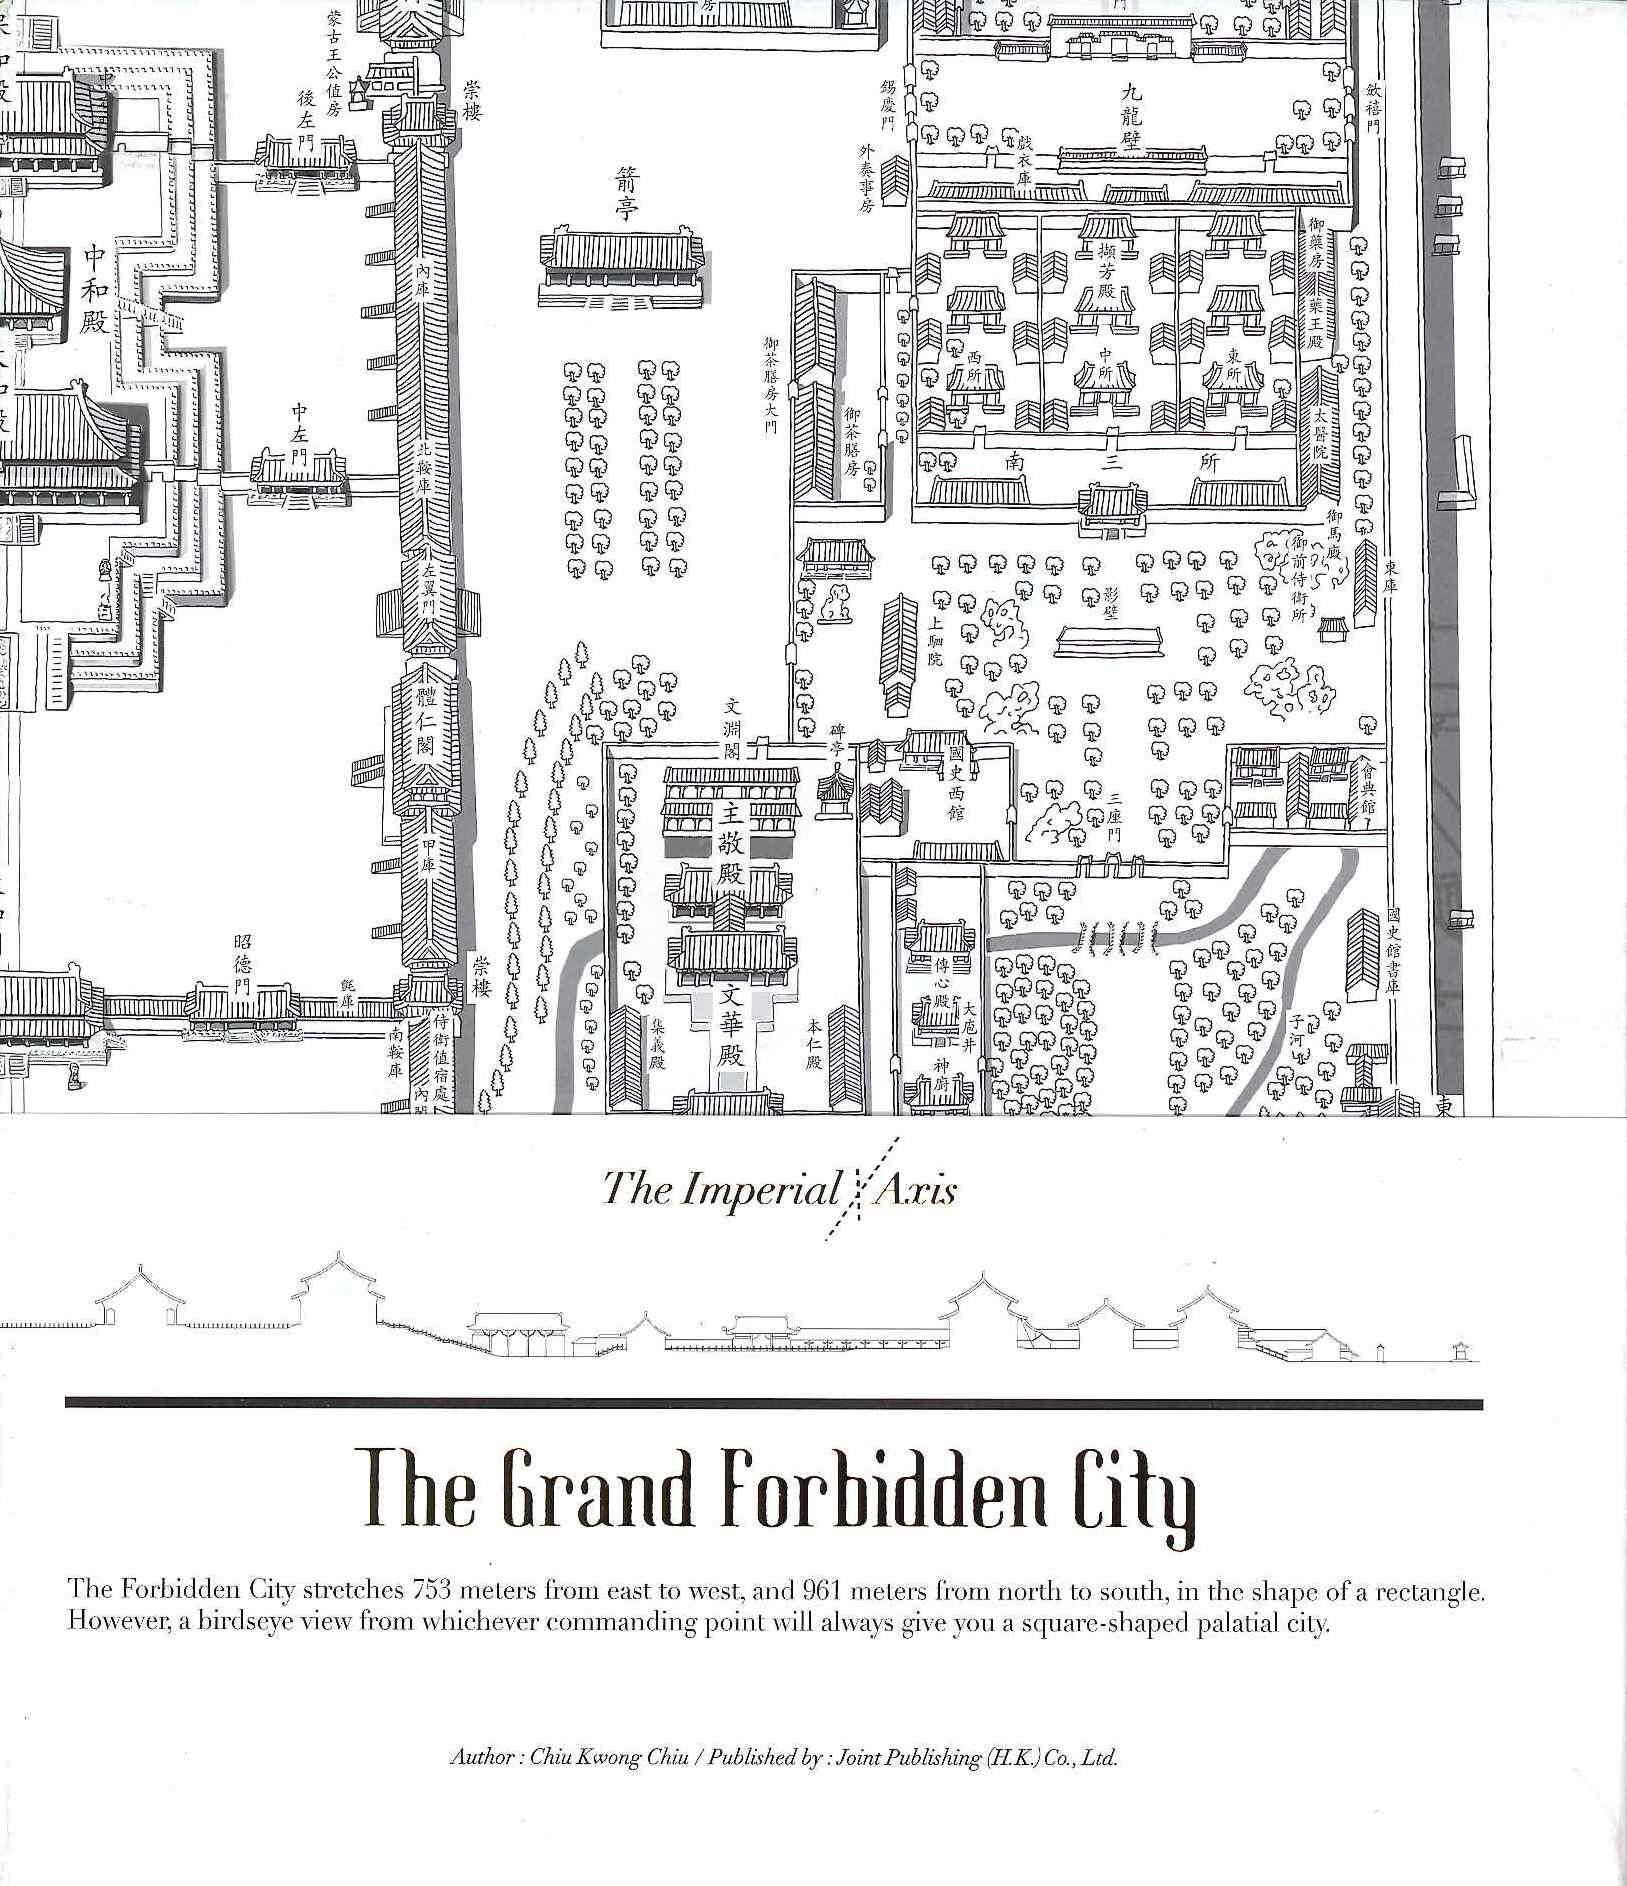 The Grand Forbidden City - The Imperial Axis (Popular Edition)